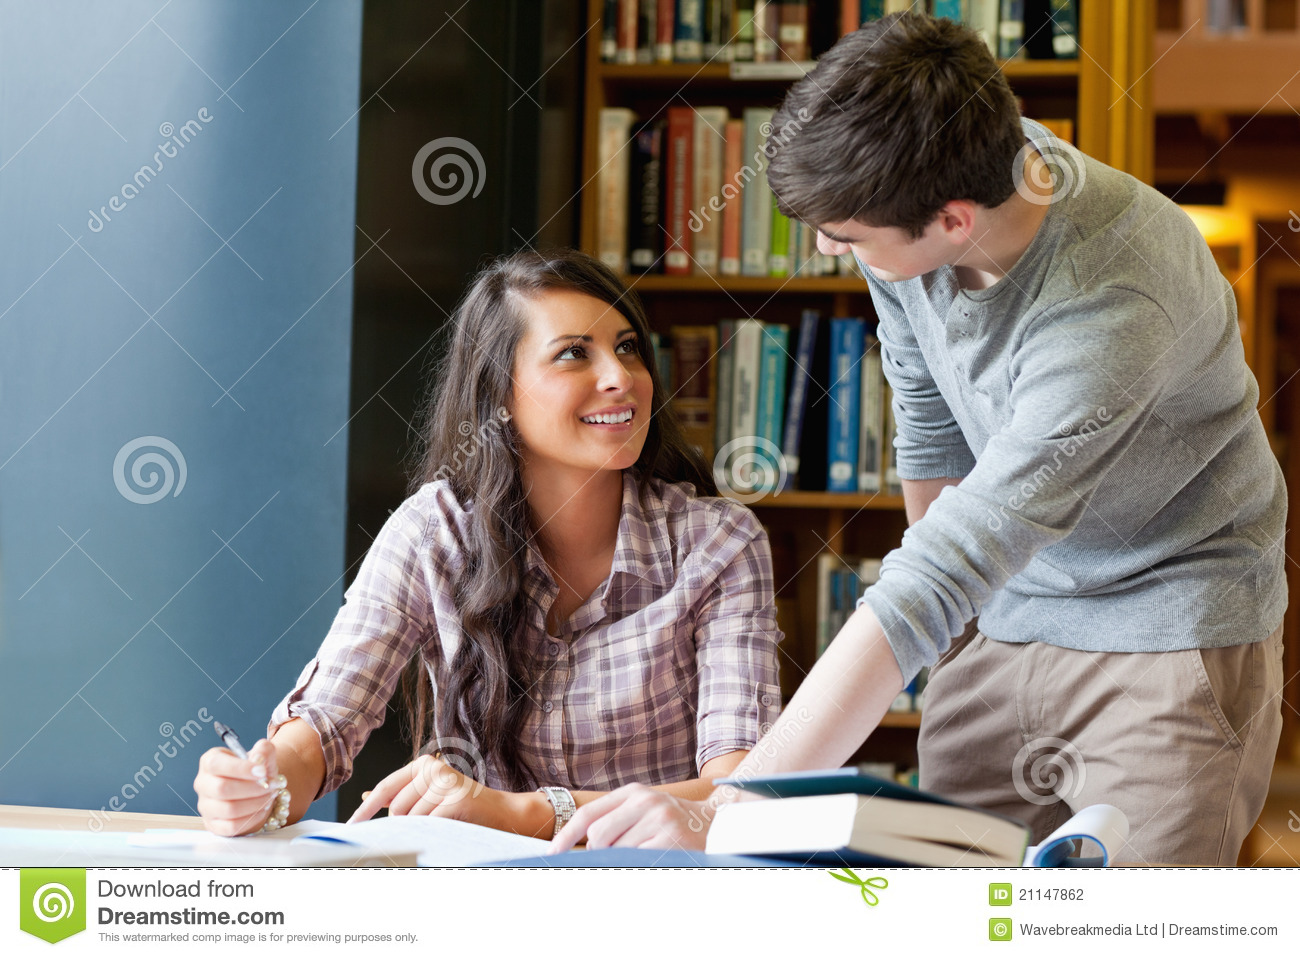 Important Of English Language Essay Essay On Helping Others In Hindi Helping Nature Essay Law Office Downey Ca  Essay On Helping Essay About Good Health also How To Write An Essay Proposal A Essay About Helping Someone Easy Persuasive Essay Topics For High School